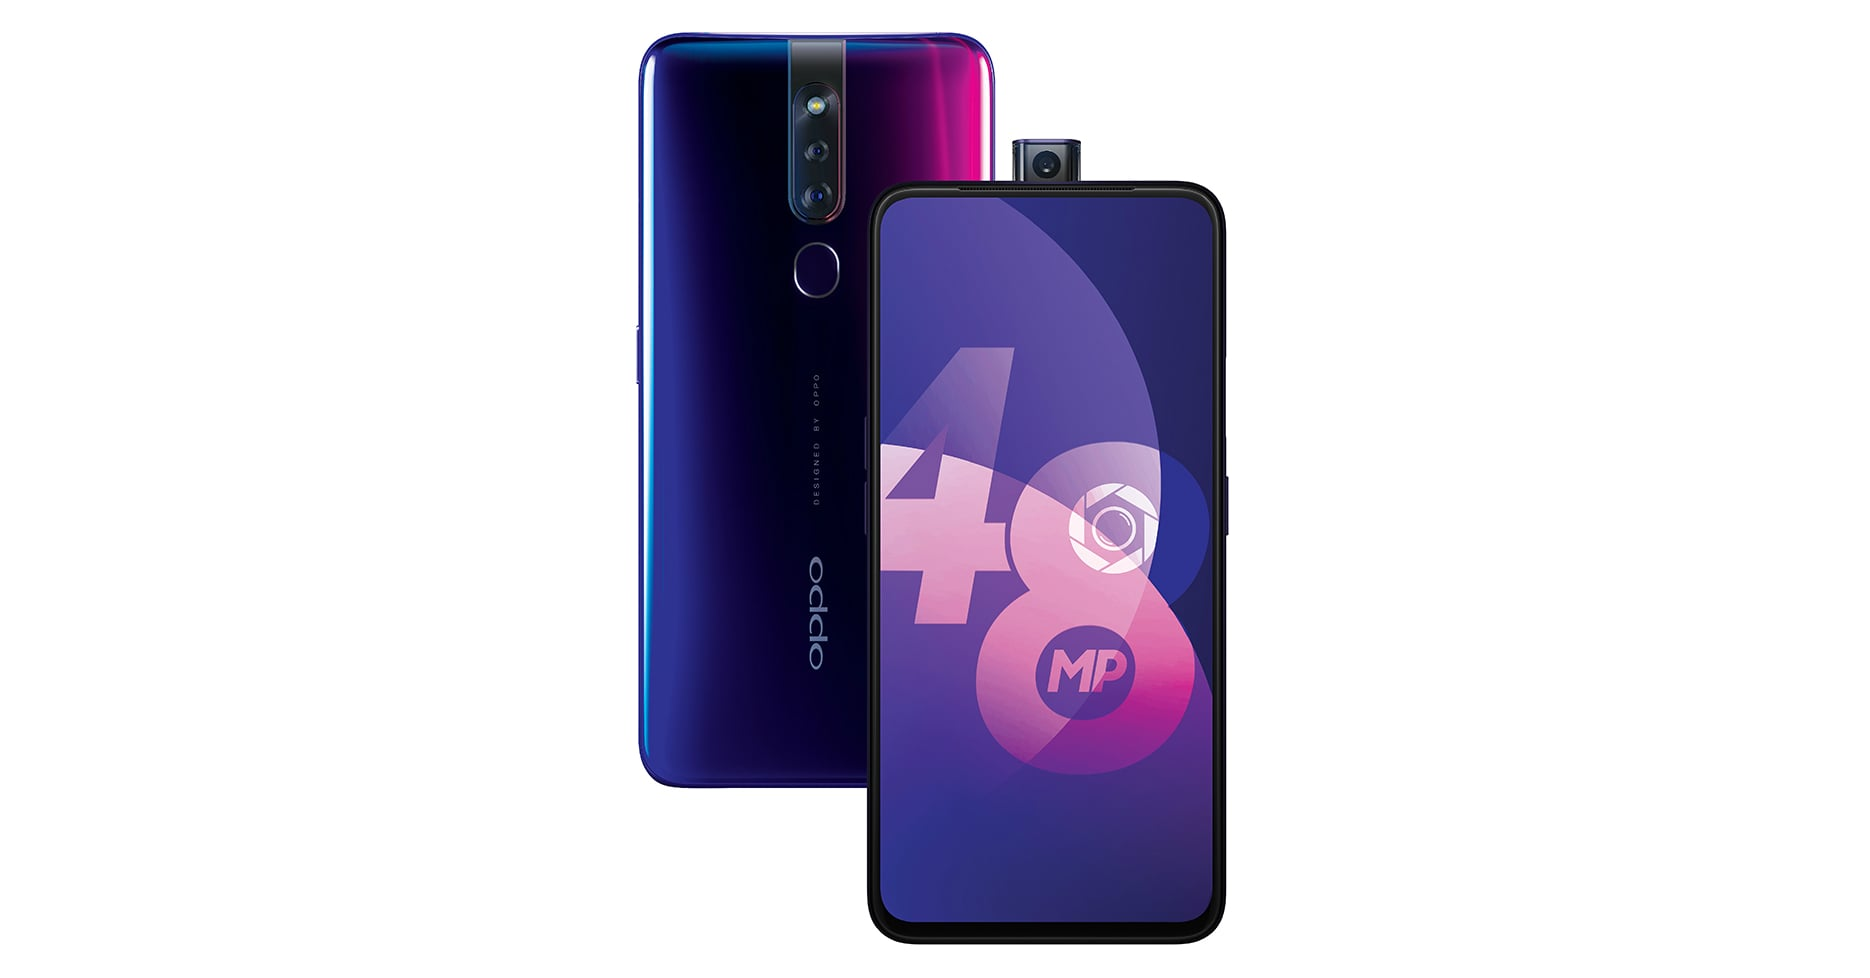 Vivo V15 Pro, Oppo F11 Pro Get Additional Exchange Discounts During Amazon Mobile and Accessories Day Sale